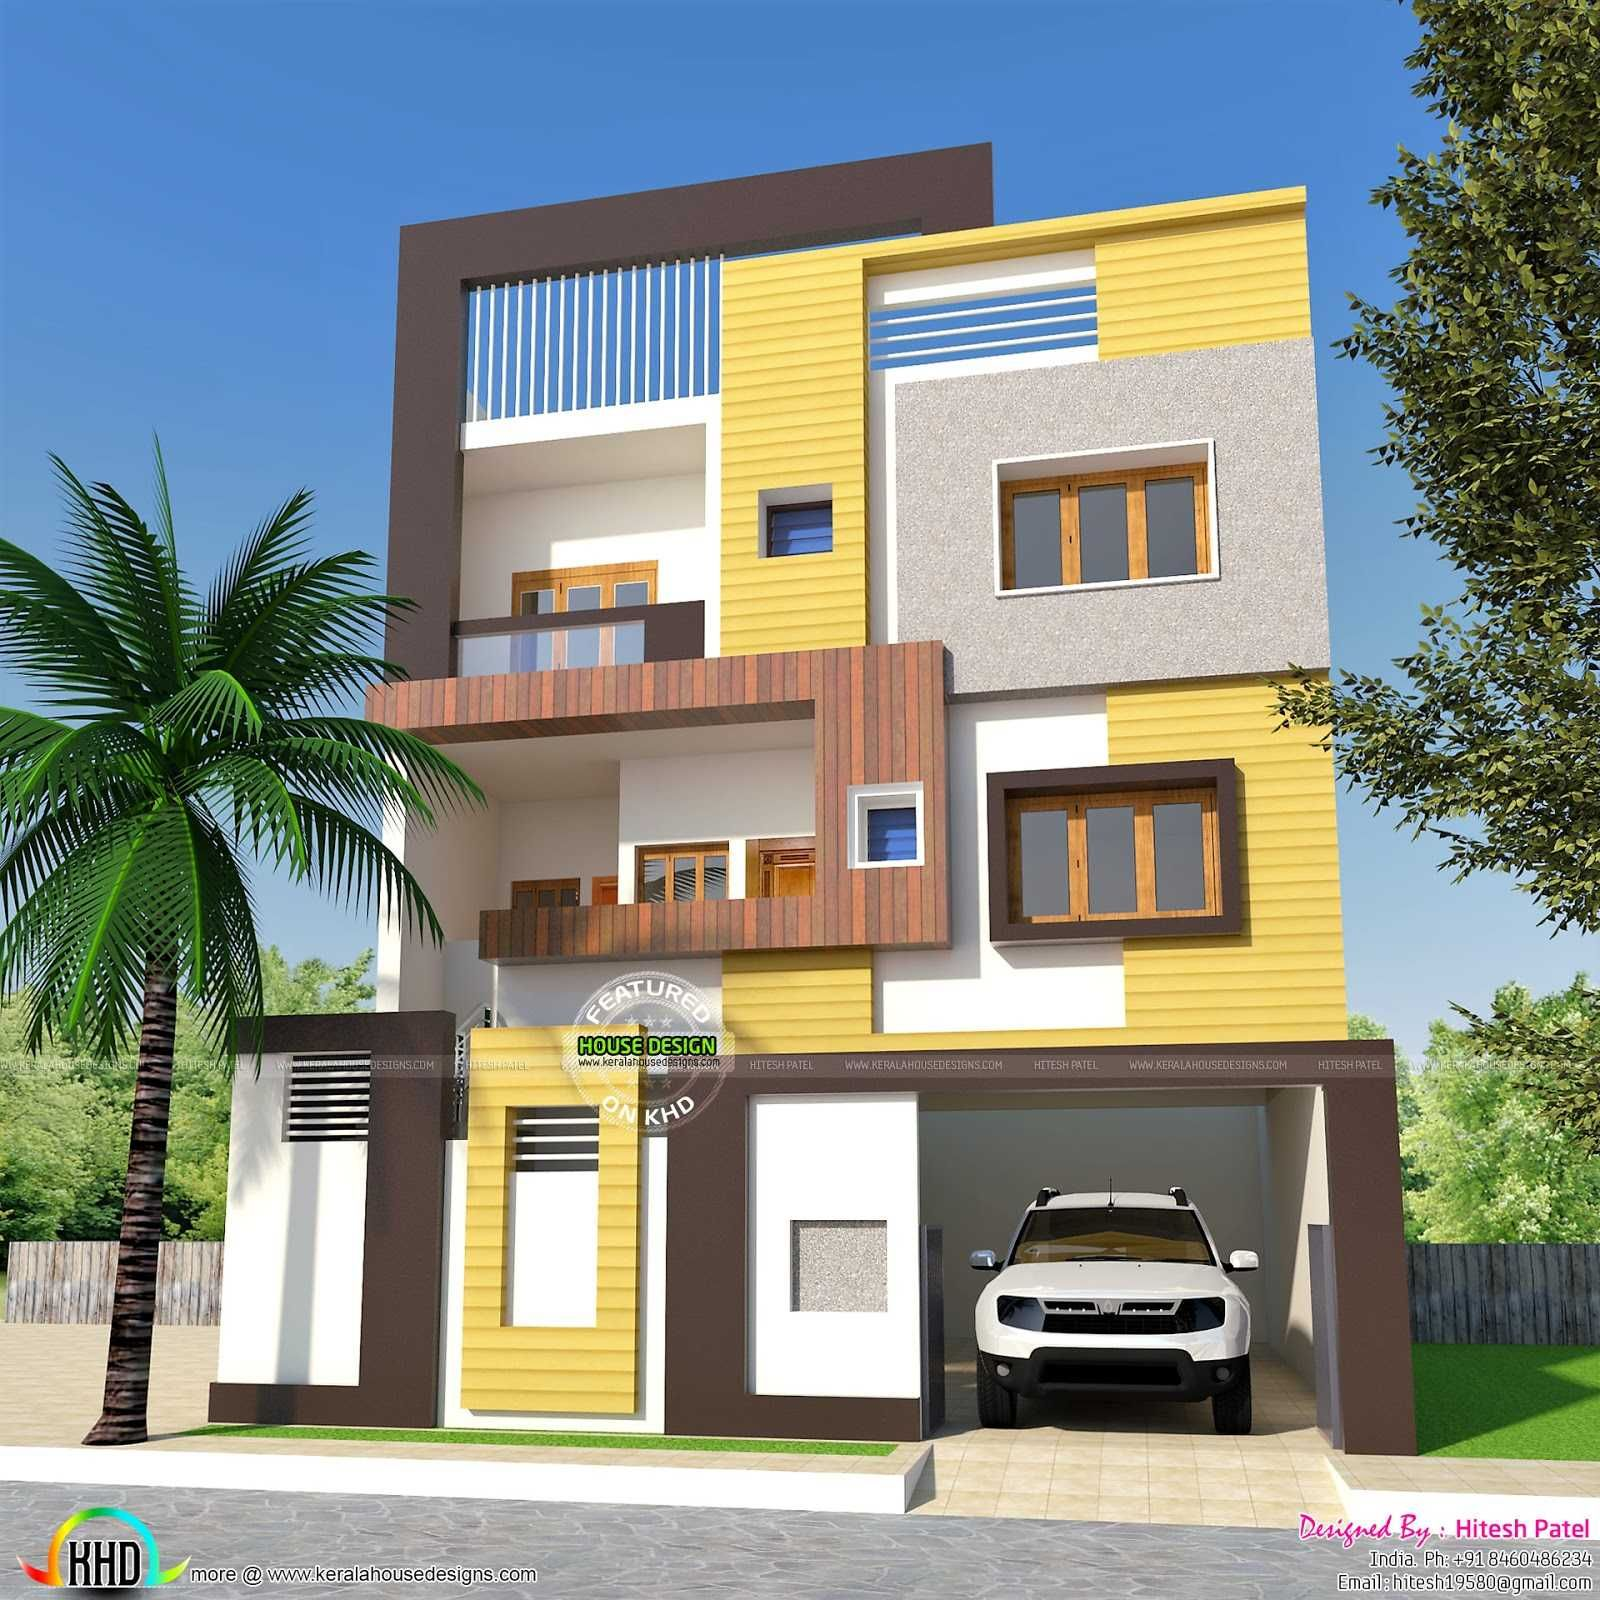 Icymi bhk house for sale in hyderabad also pin by robert valenzuela on home elevation rh pinterest